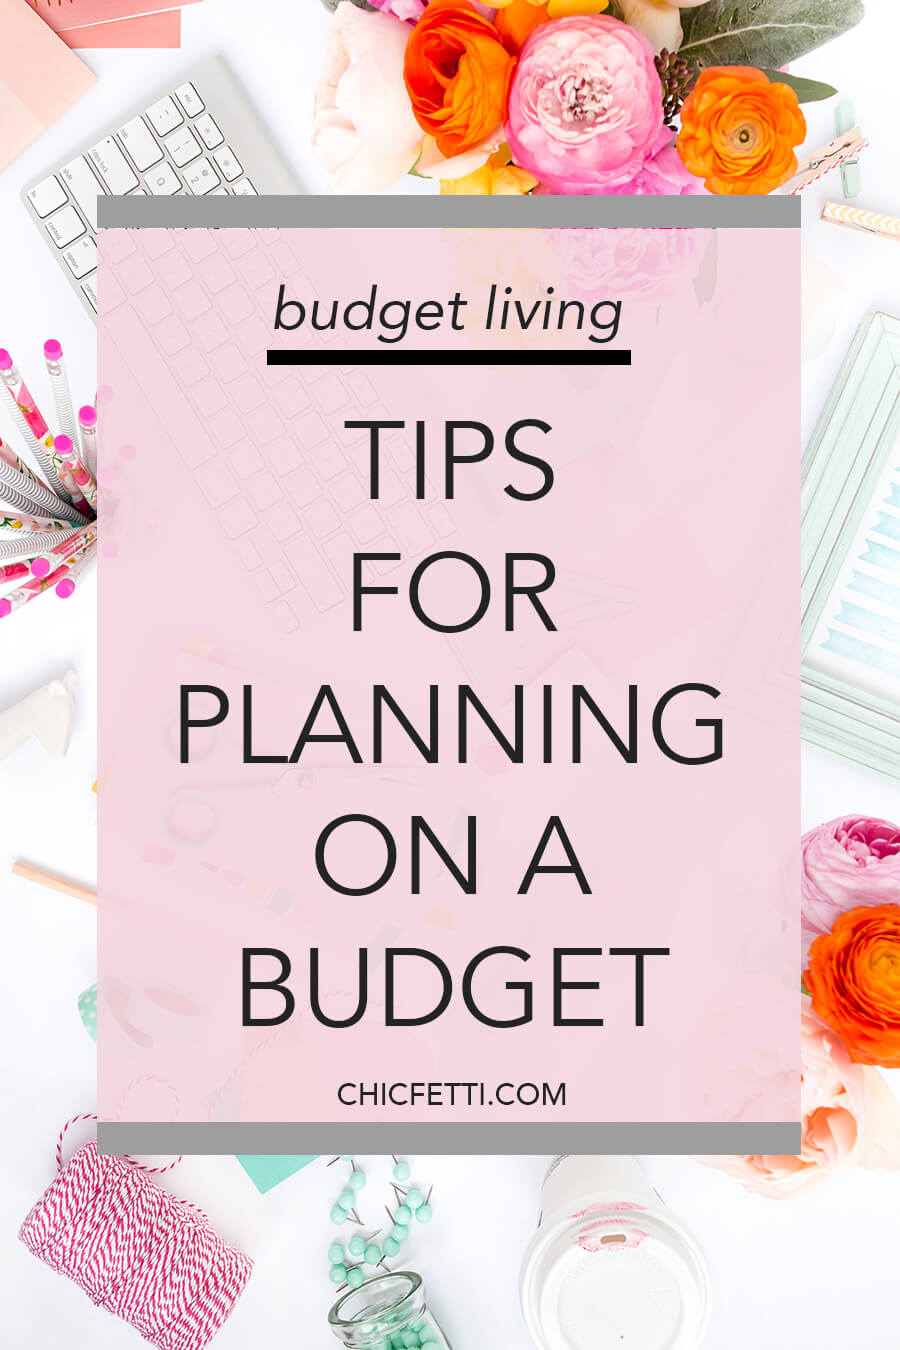 Tips for planning on a budget - If you're a planner girl, learn how to save money on planners and planner supplies. There are so many ways you can still plan without blowing your planning budget. #planners #planning #howtoplan #plannerideas #budget #budgeting #budgetliving #howtobudget